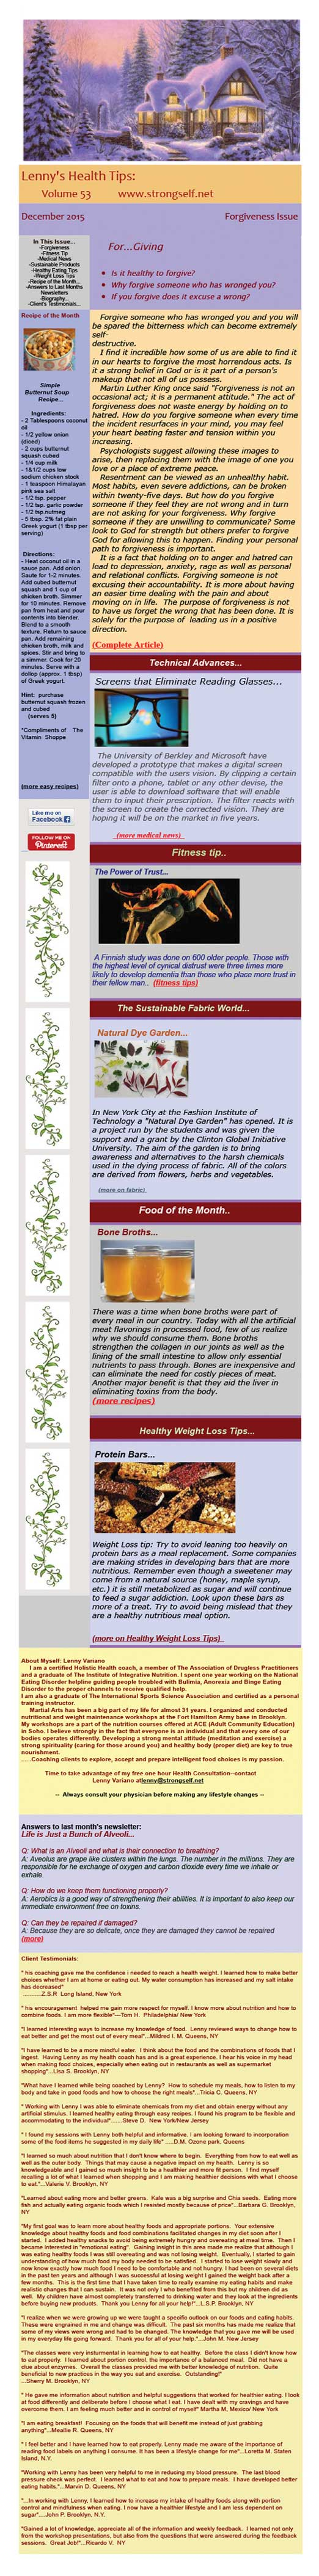 December 2015 Healthy Tips Newsletter from certified Holistic Health Counselor Lenny Variano